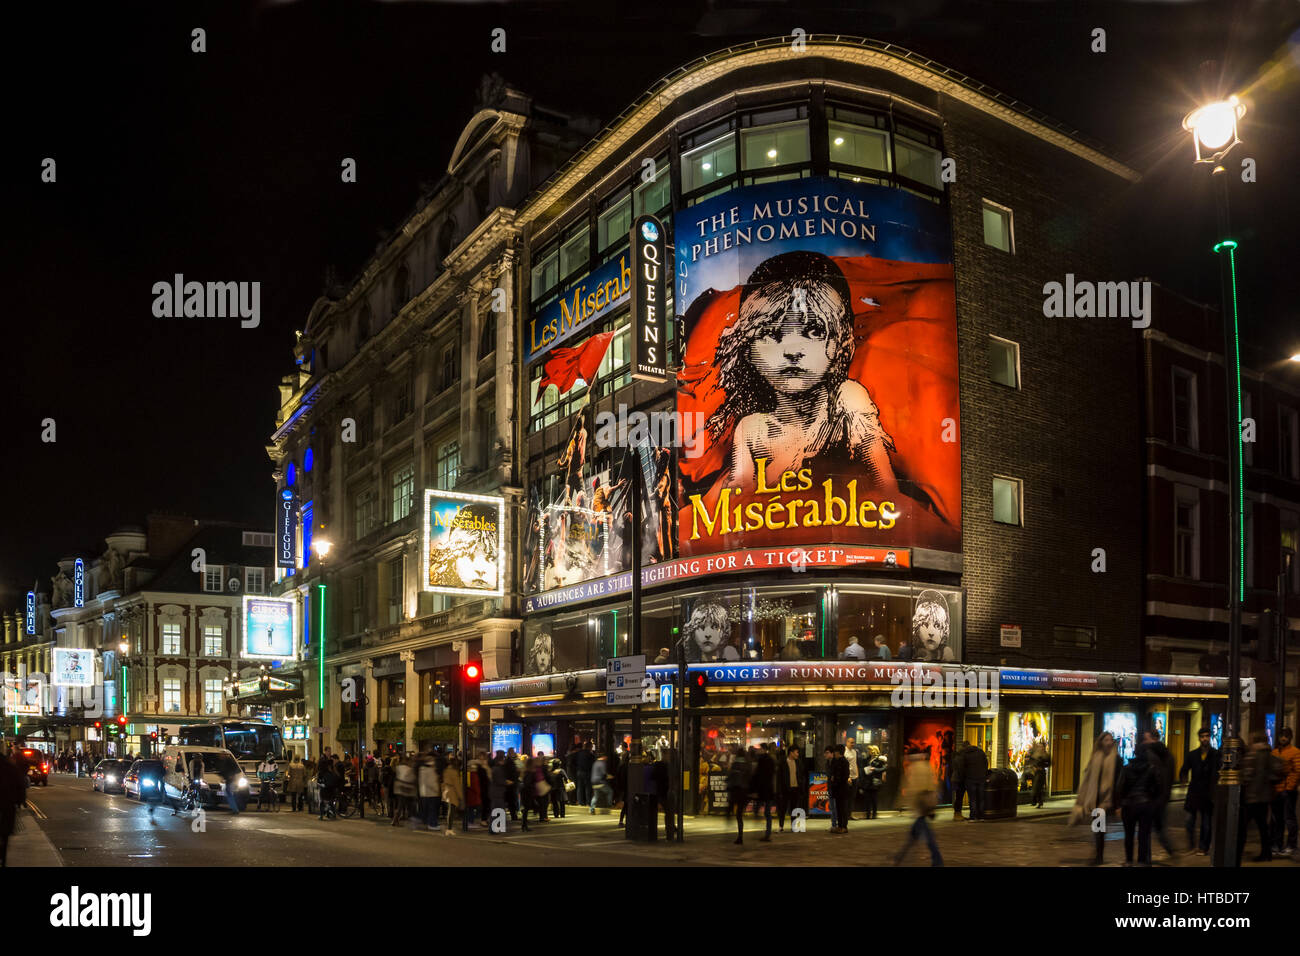 London's West End at night with Les Miserables at Queens Theatre in Shaftesbury Avenue. - Stock Image